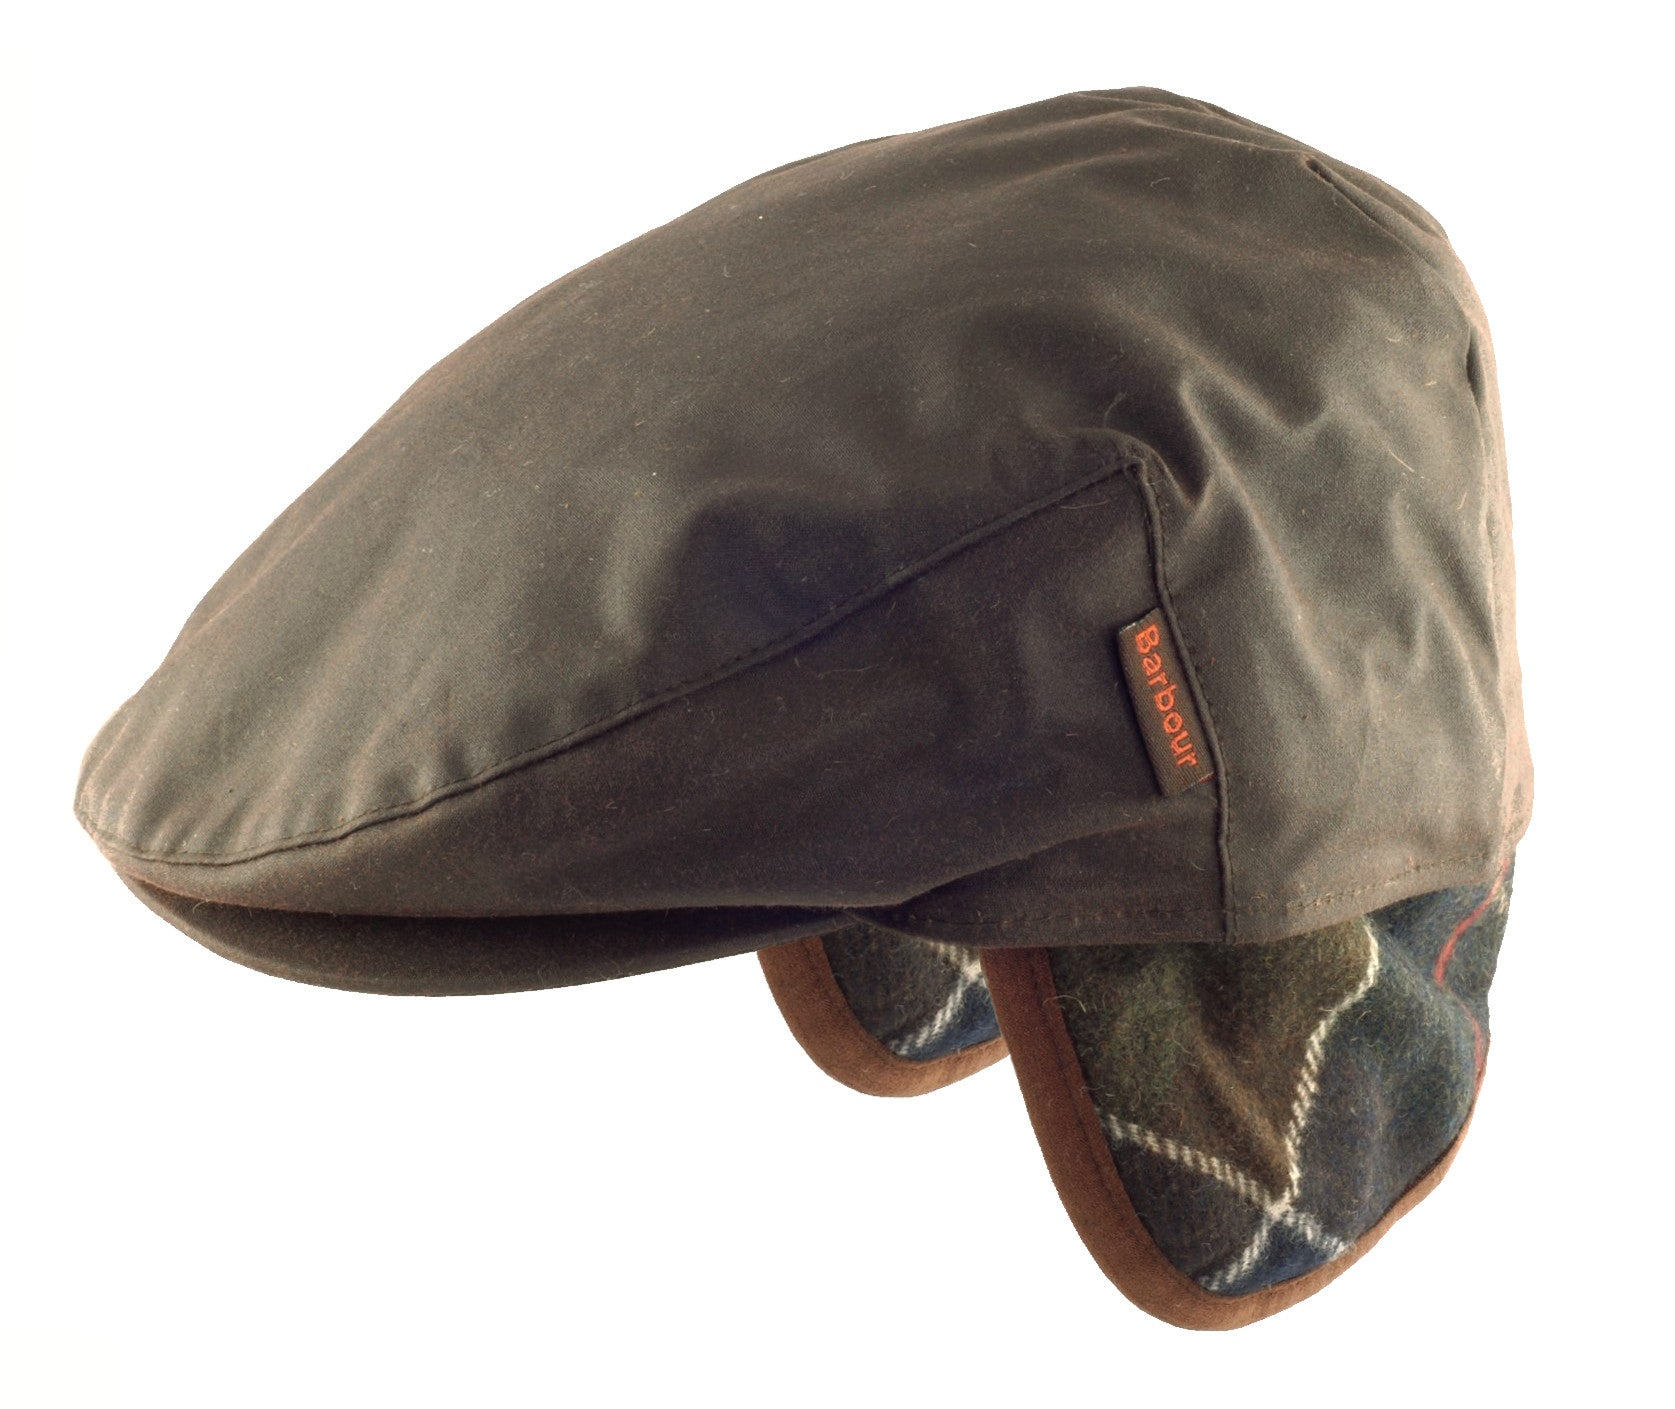 Barbour Cheviot Tartan Cap - North Shore Saddlery